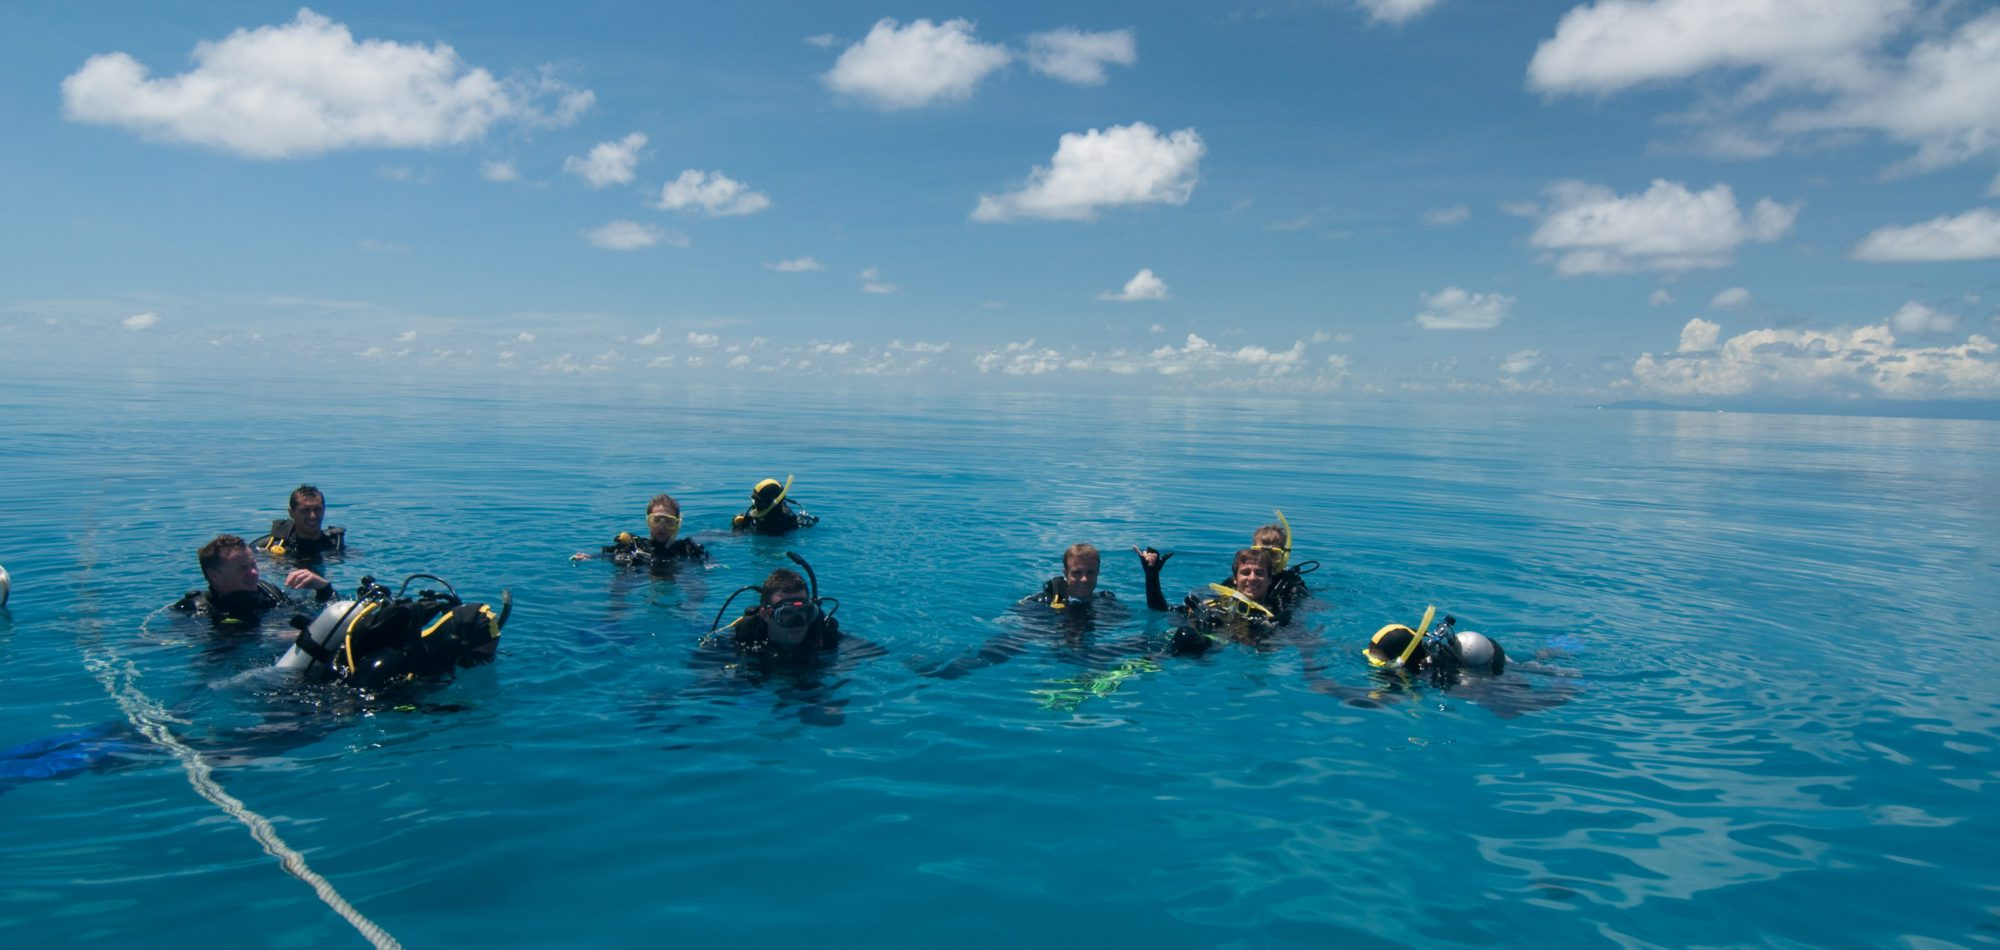 Cairns, learn to scuba dive - newly certified divers prepare to descend for open water dive